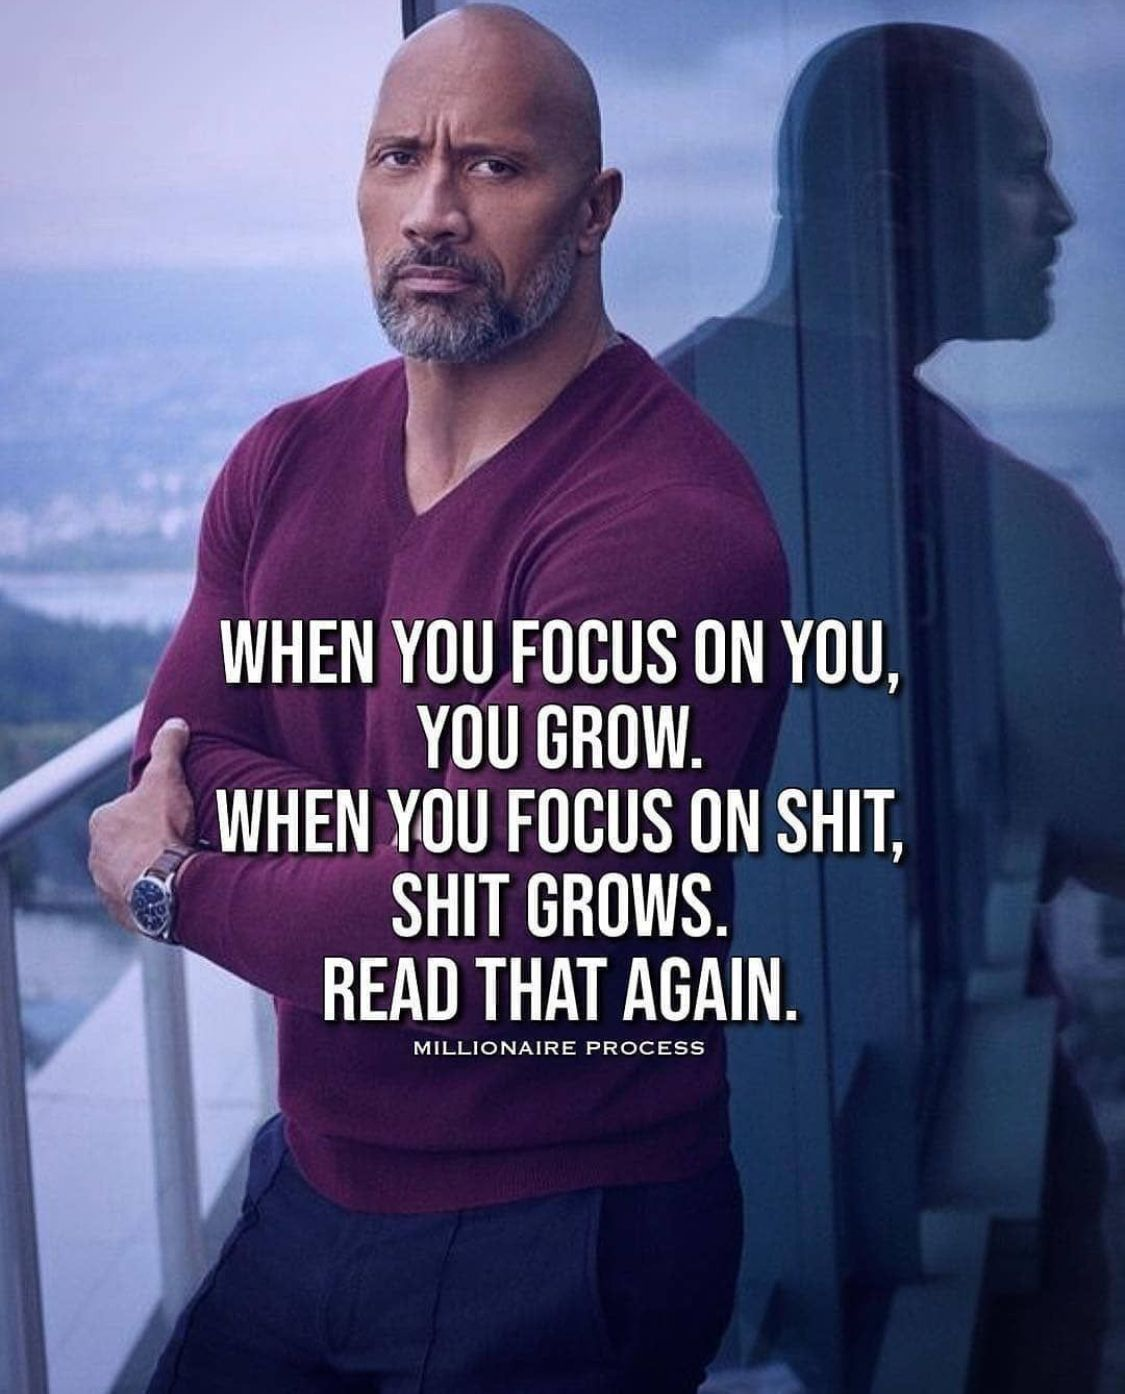 When you focus on you, you grow. When you focus on $hit, $hit grows. Read that again.  #relationships #men #intimacy #relationshipadvice #allanapratt #success  #lovecoaching #goalsetting  #marriageproblems #relationshipproblems #movingon #healingfromheartbreak #adviceblog #affirmations #words #photooftheday #bestoftheday #thankfulheart